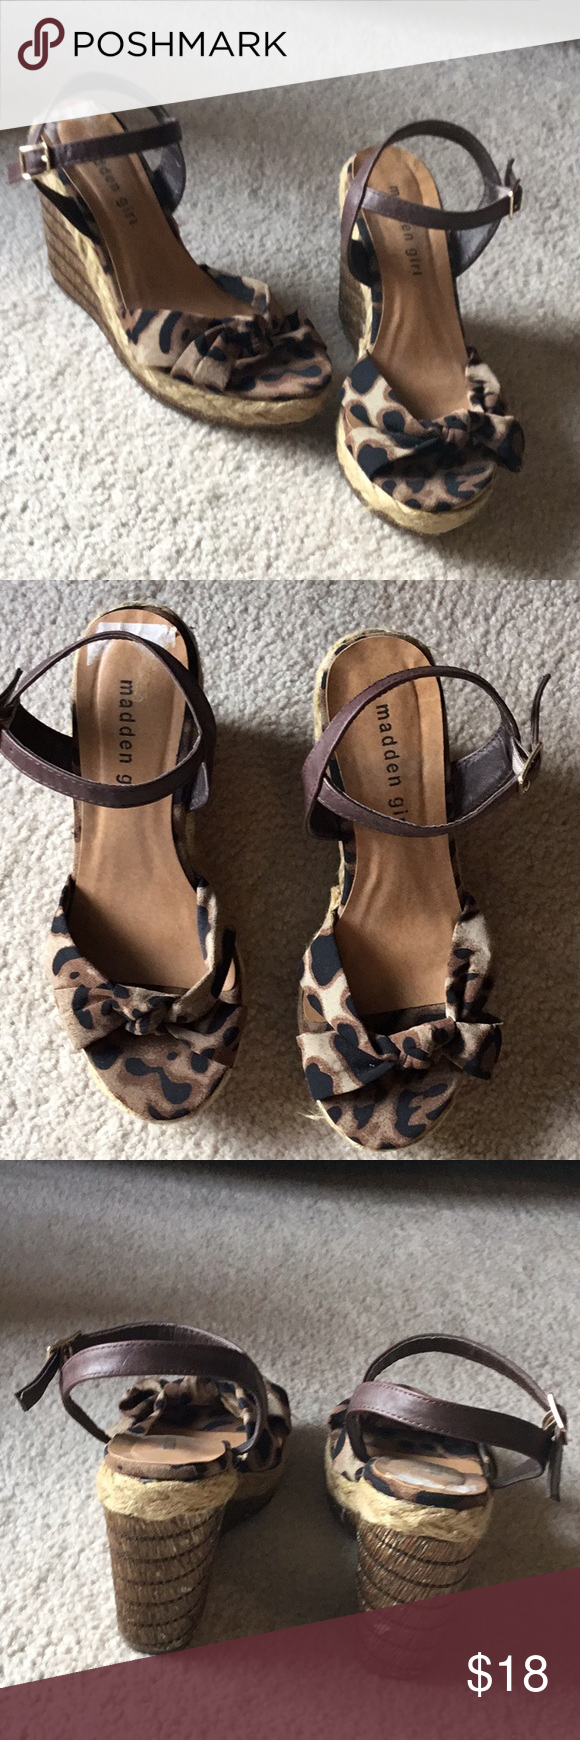 a68e8aced486 Madden Girl platform heels size 7 These are platform heeled shoes by madden  girl. They